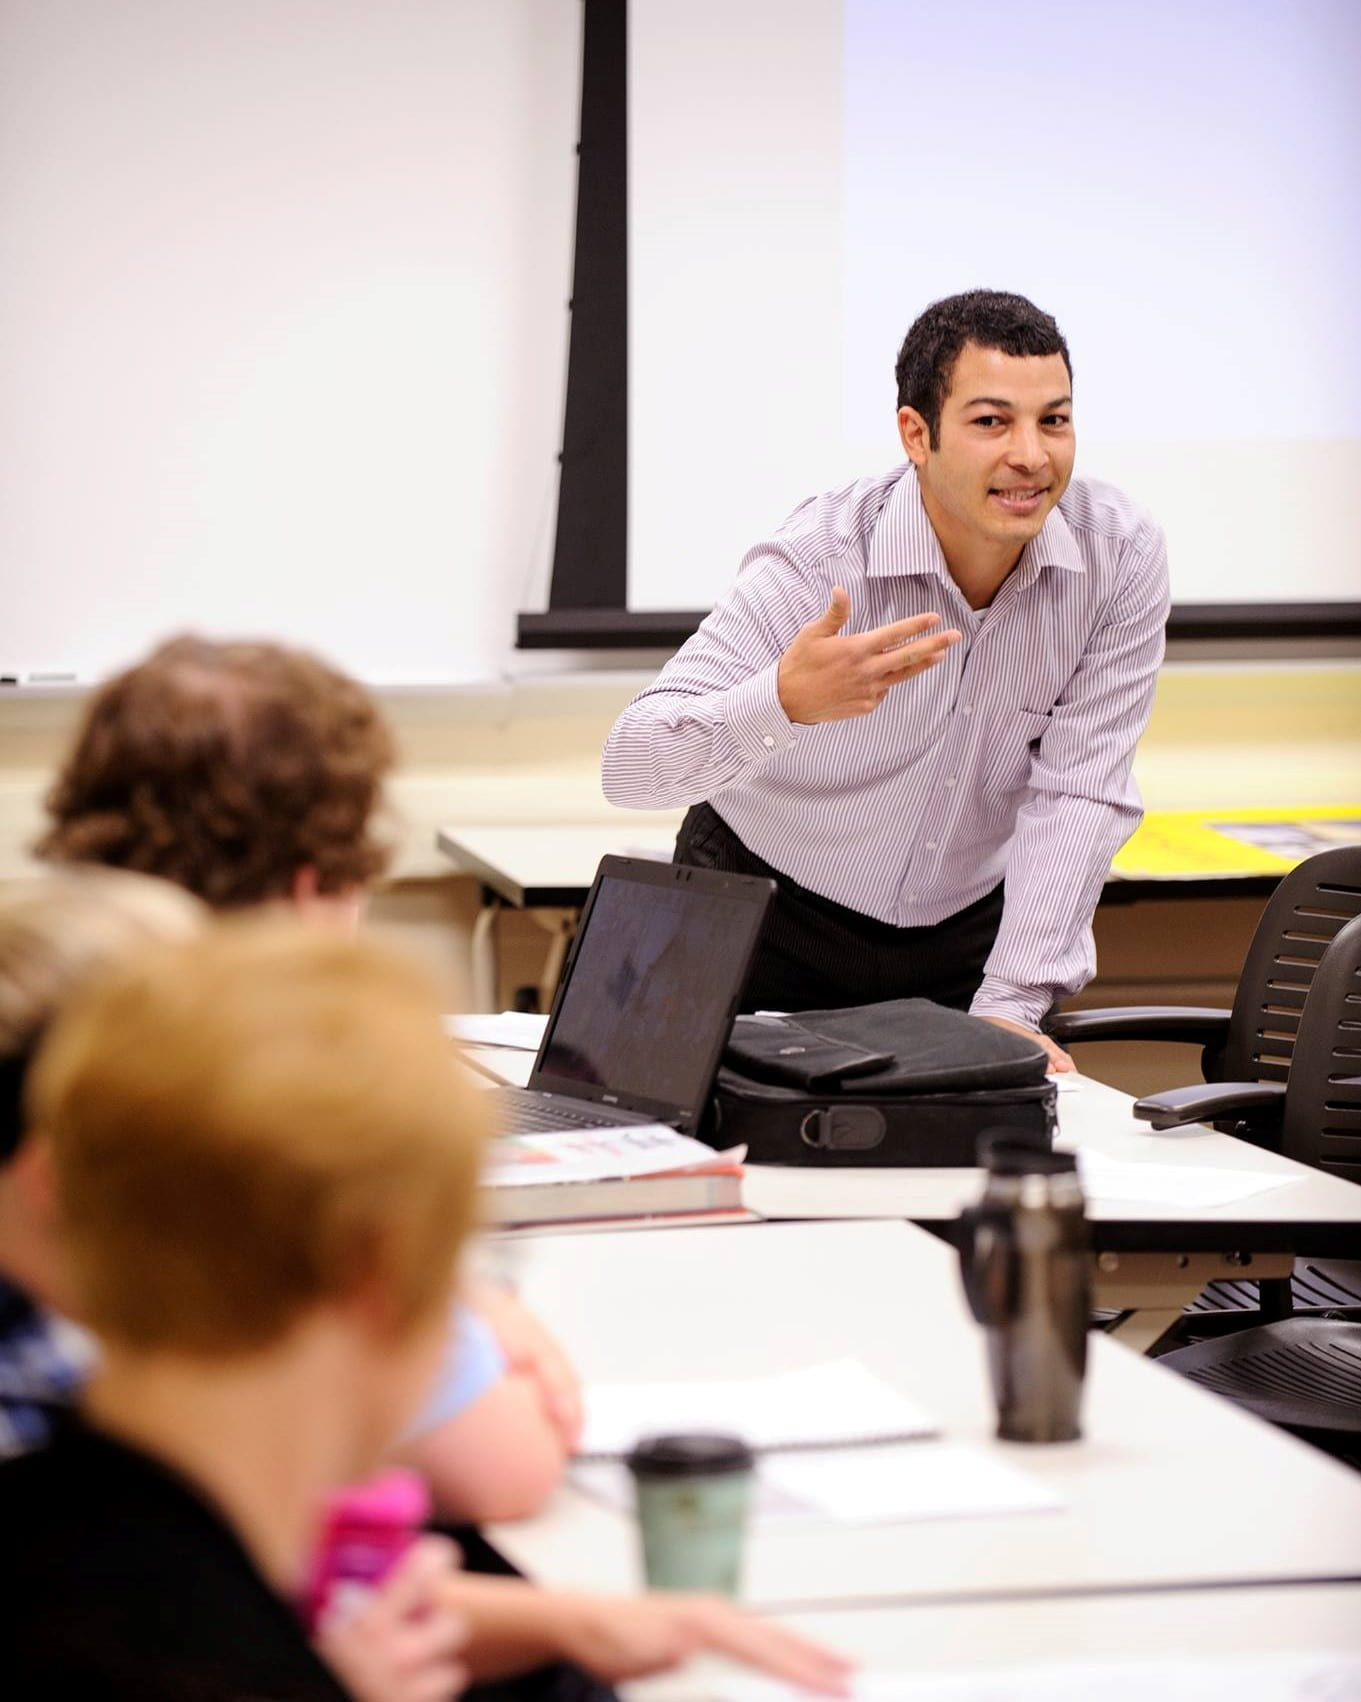 This photo shows Assistant Professor Adil Bentahar standing at the front of the classroom and gesturing to three students.